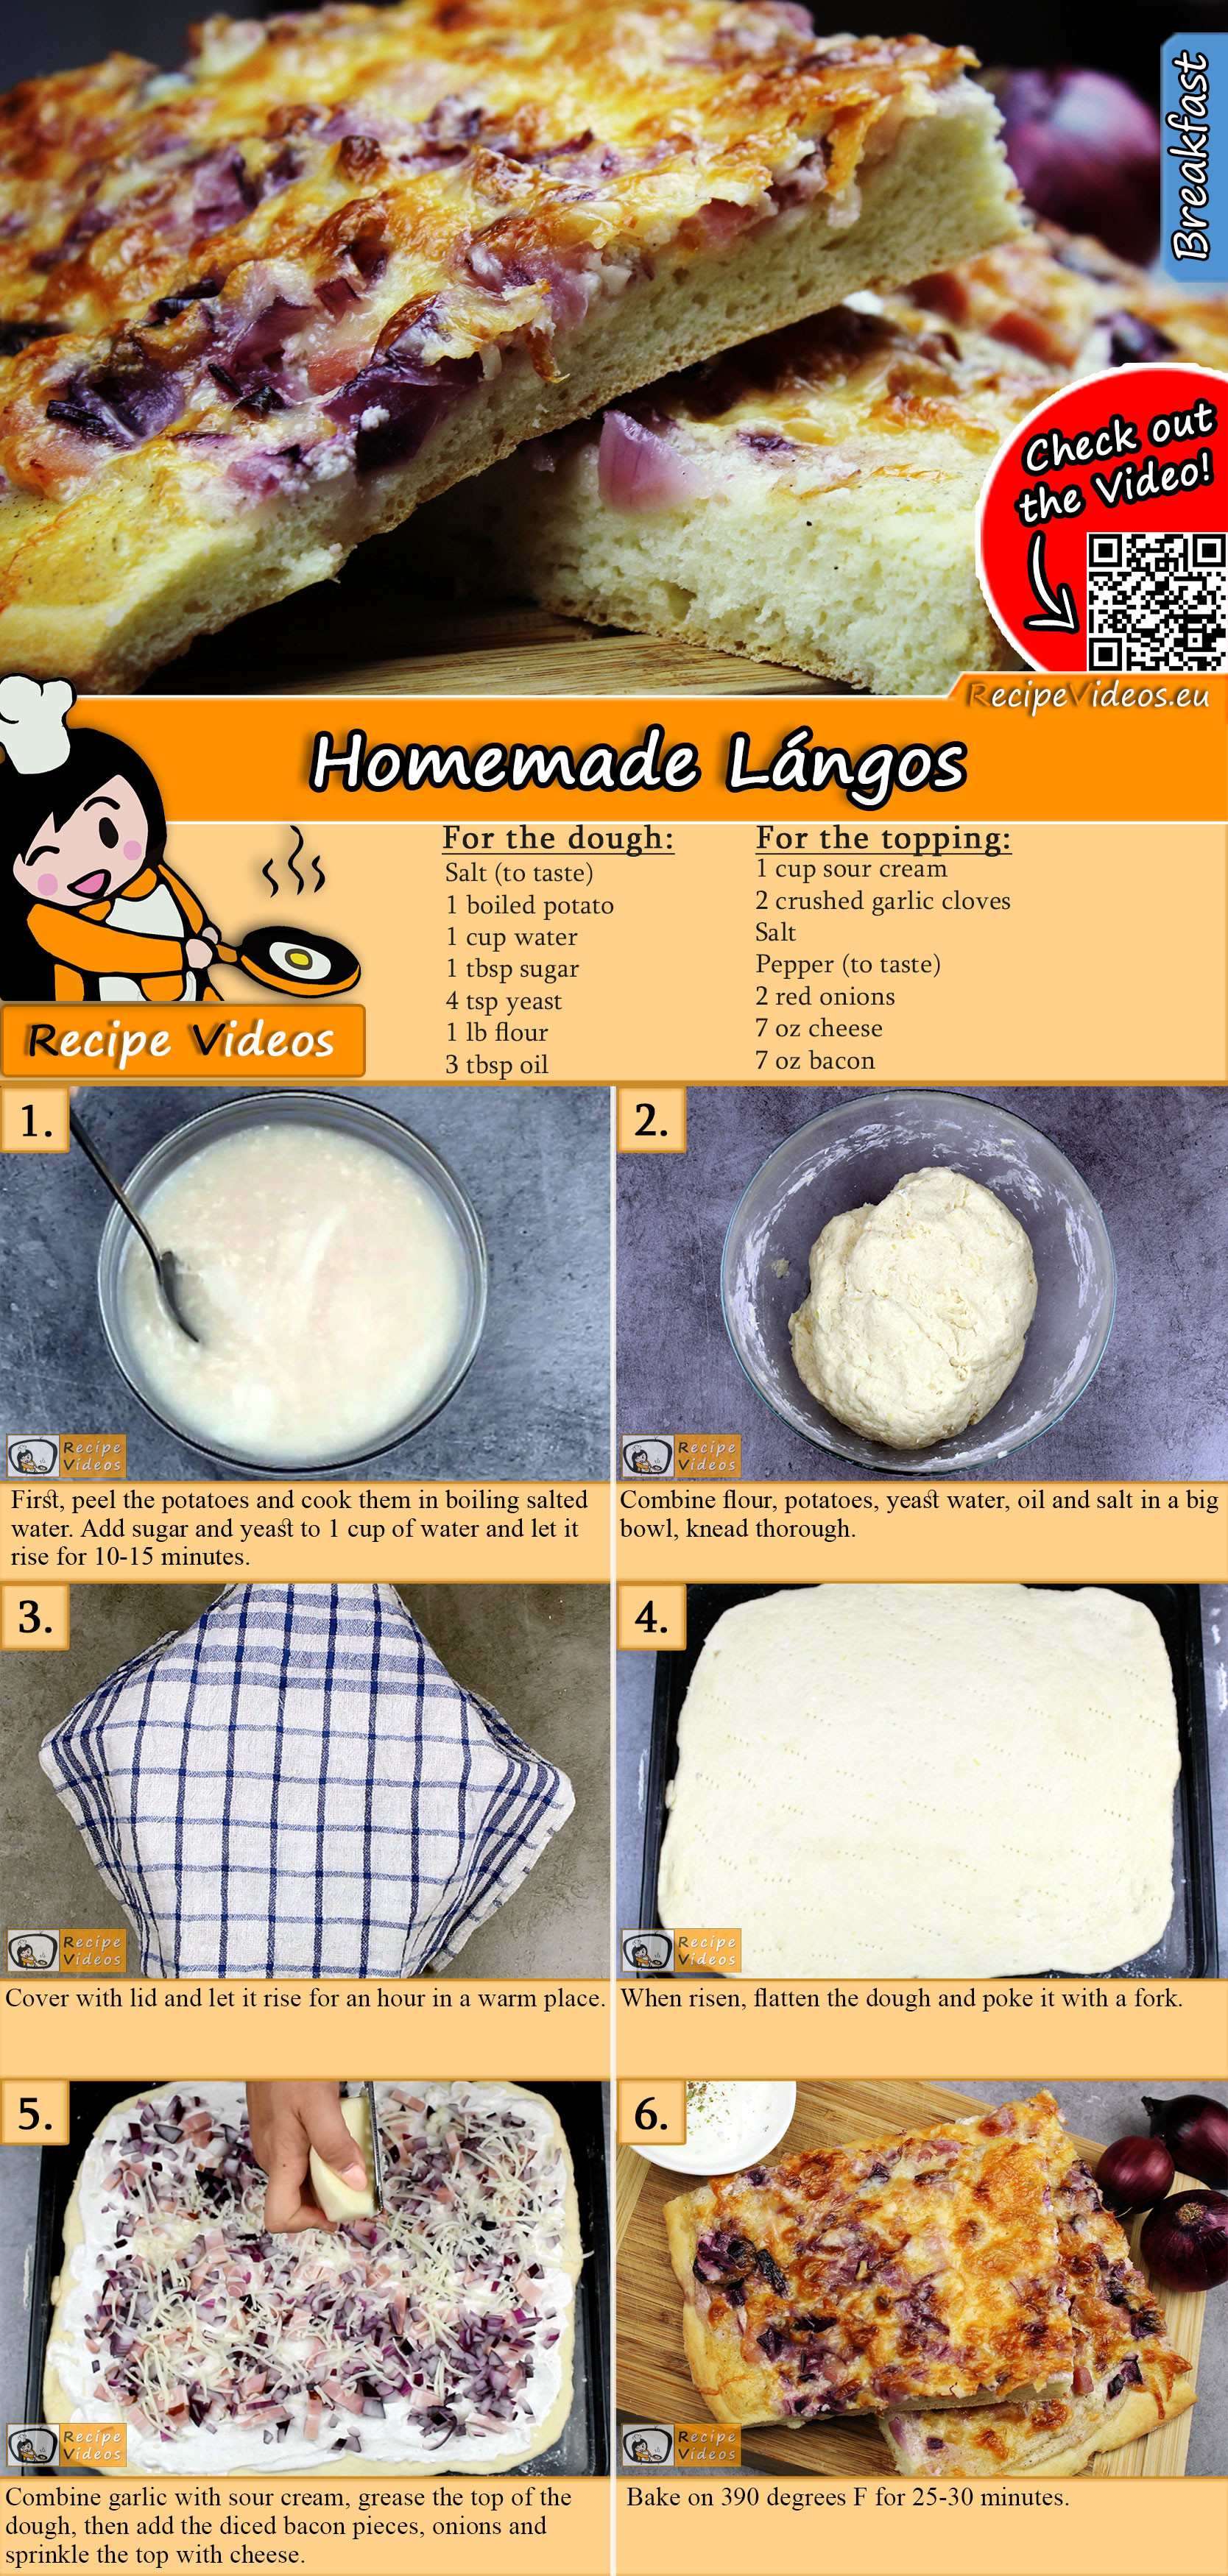 Homemade Lángos recipe with video